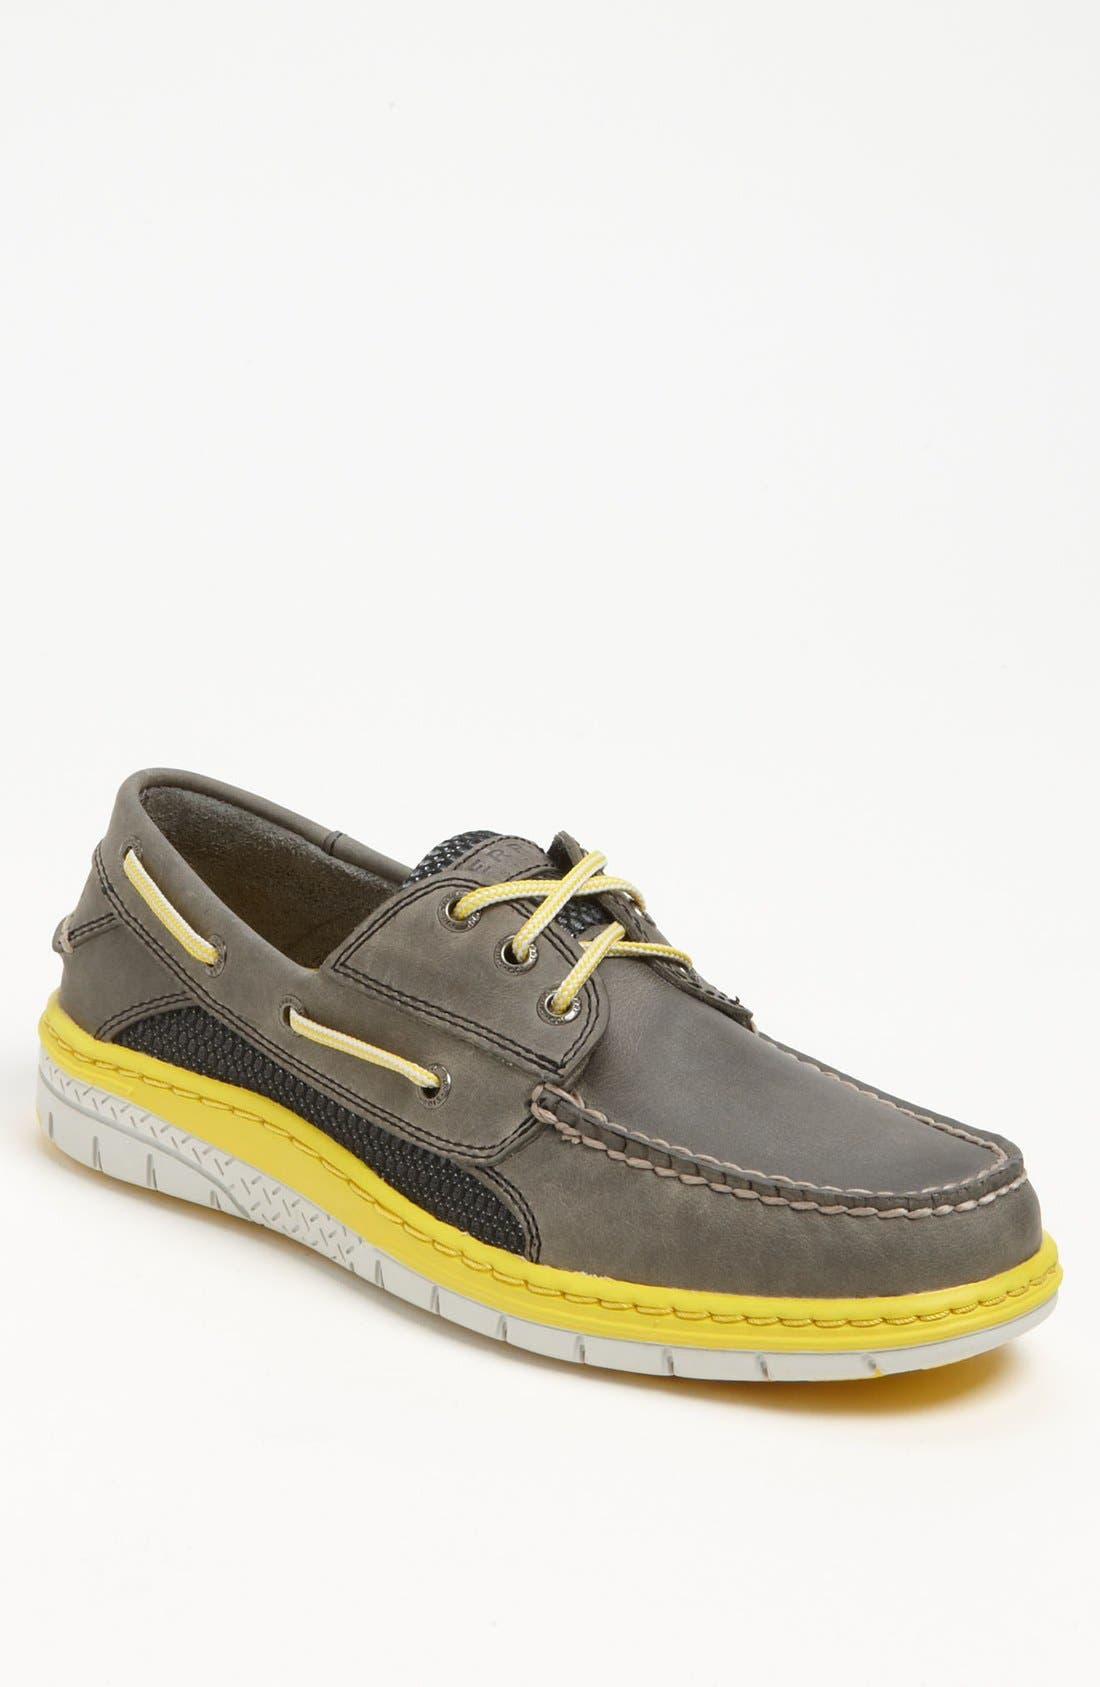 'Billfish Ultralite' Boat Shoe,                             Main thumbnail 4, color,